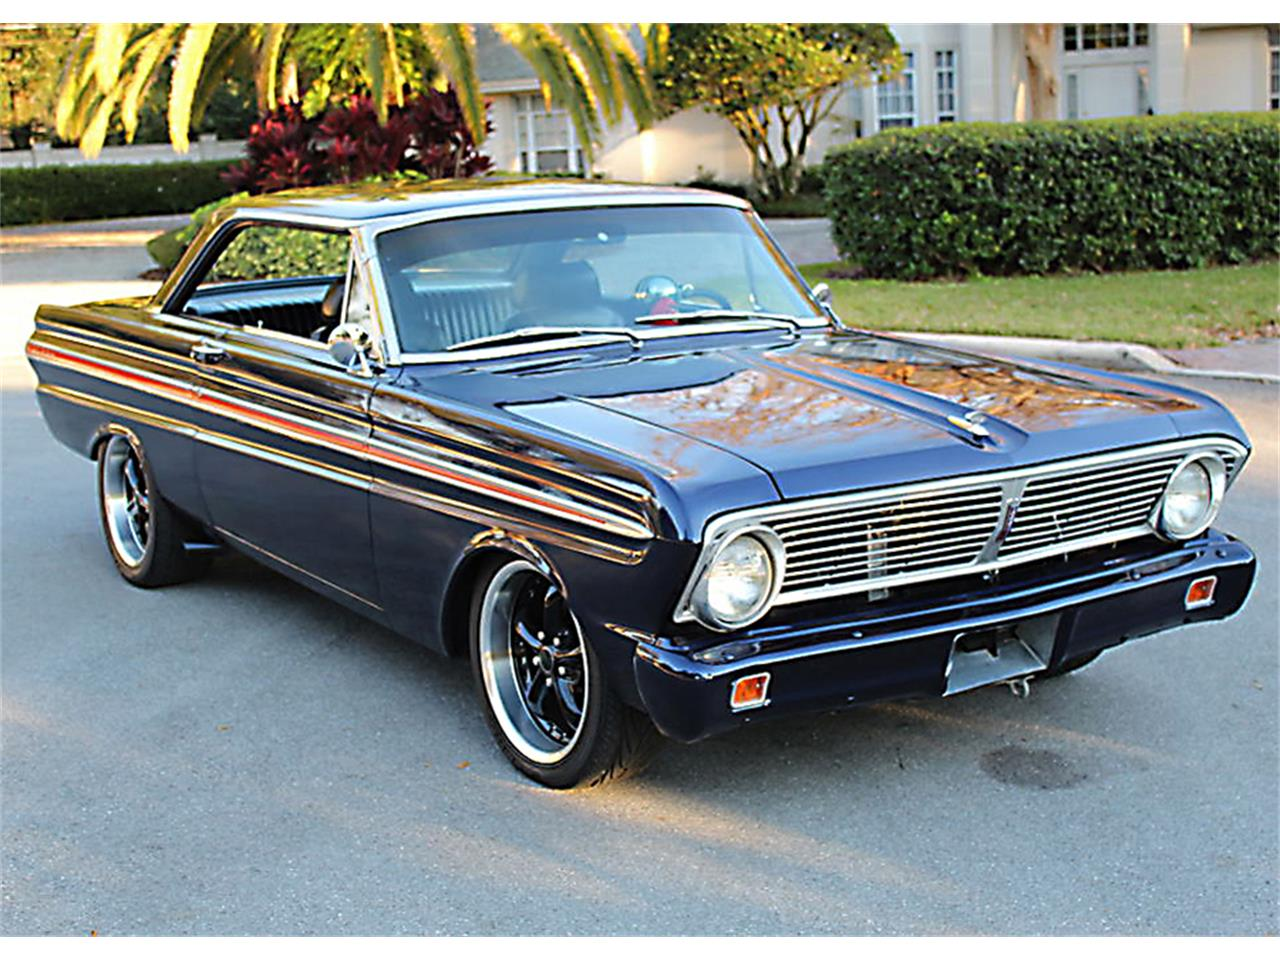 Large Picture of '65 Falcon located in Florida Offered by MJC Classic Cars - PH47